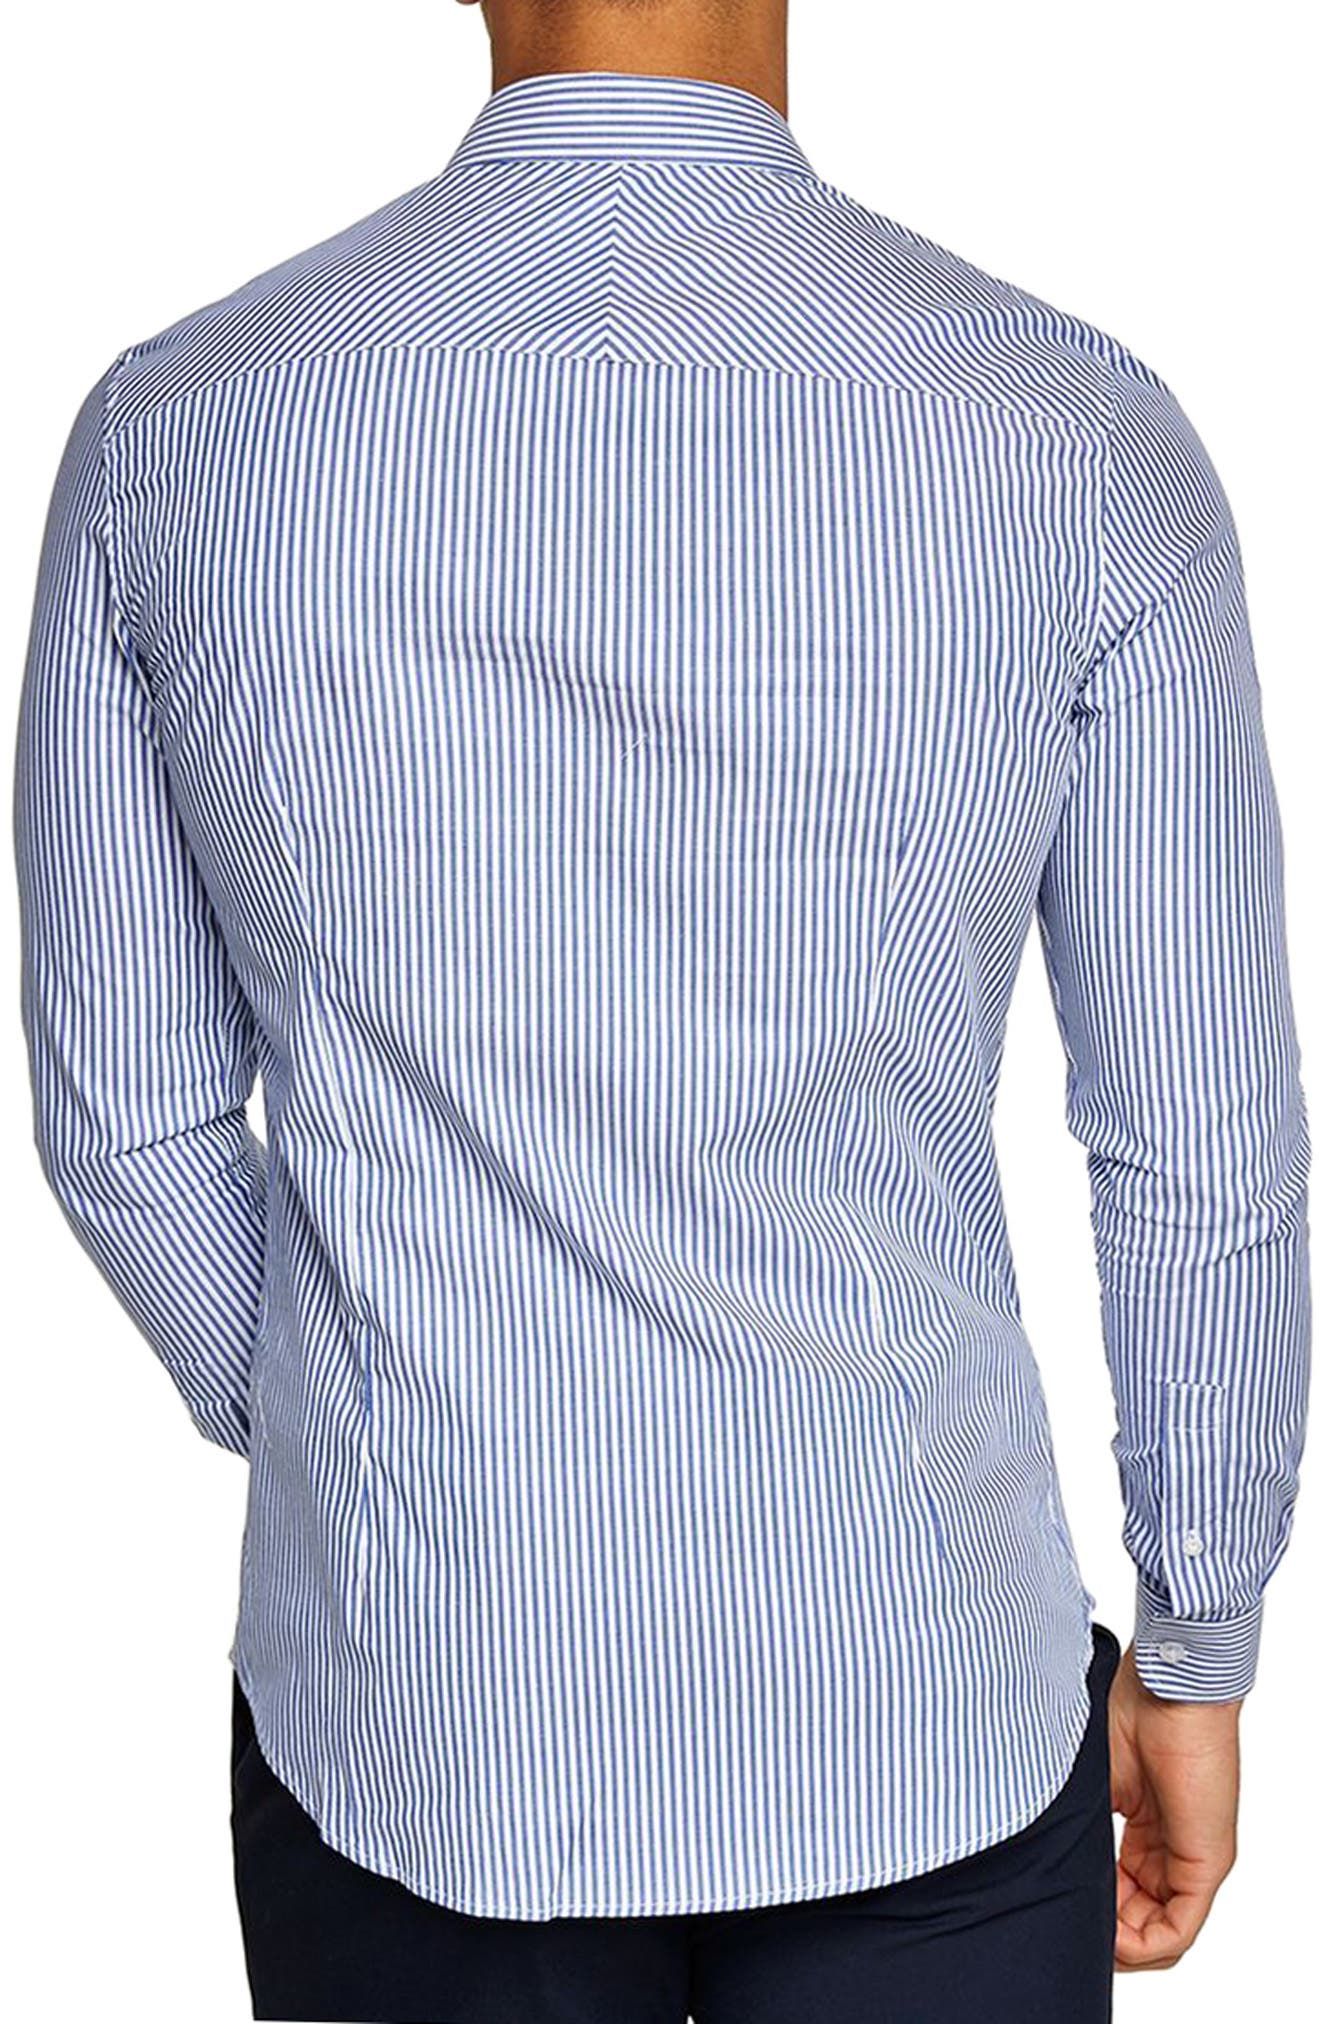 Muscle Fit Stripe Shirt,                             Alternate thumbnail 2, color,                             Blue Multi